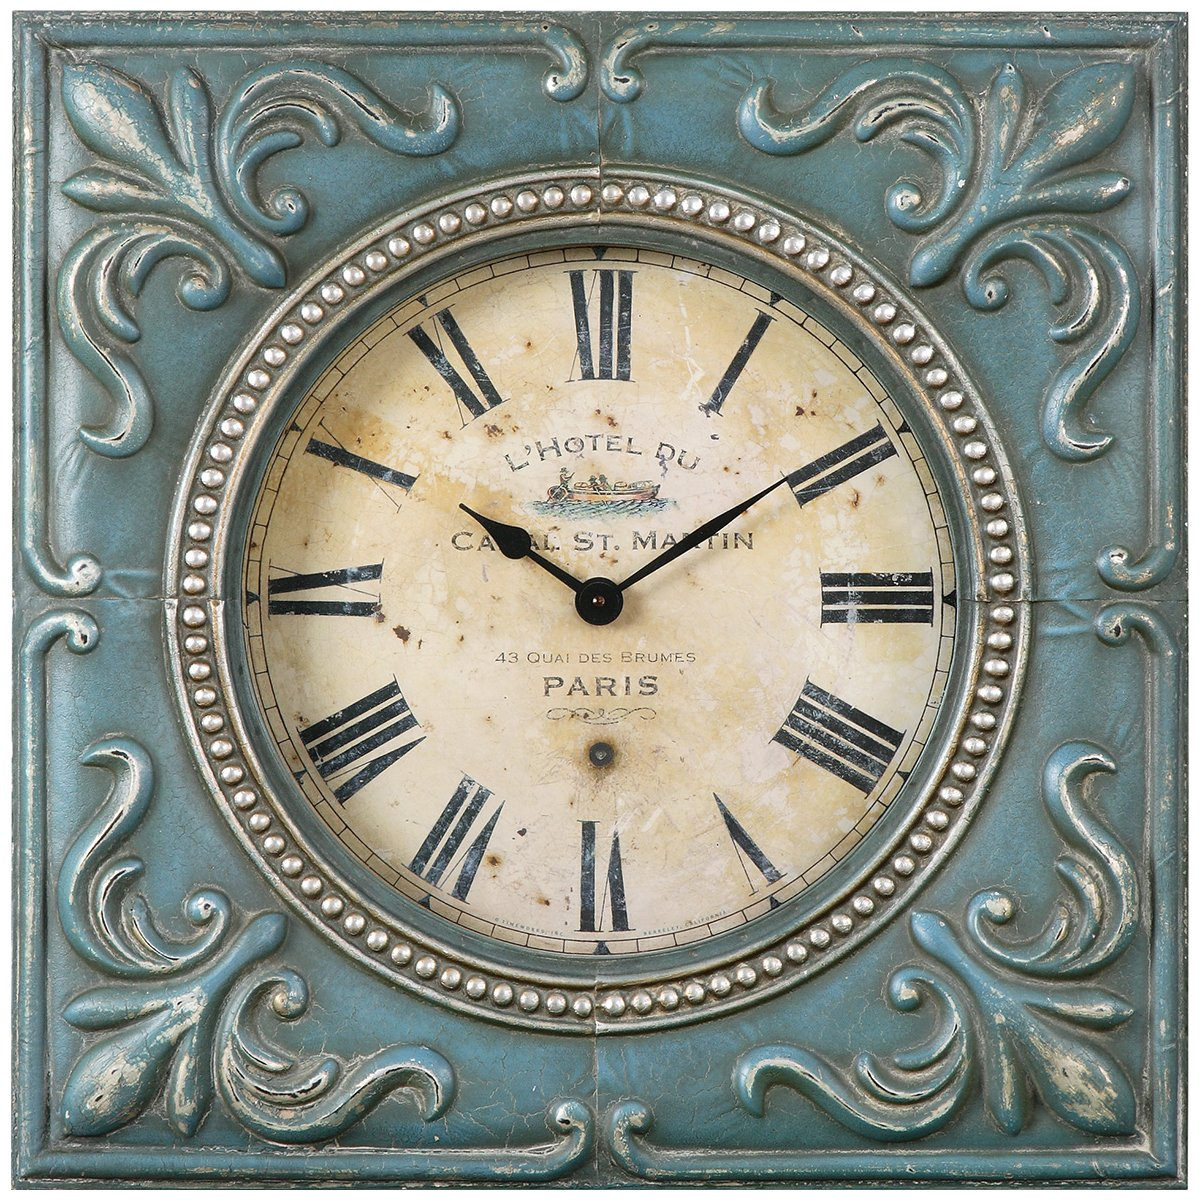 9 large decorative wall clocks to check time in style uniq home square wall clock amipublicfo Images